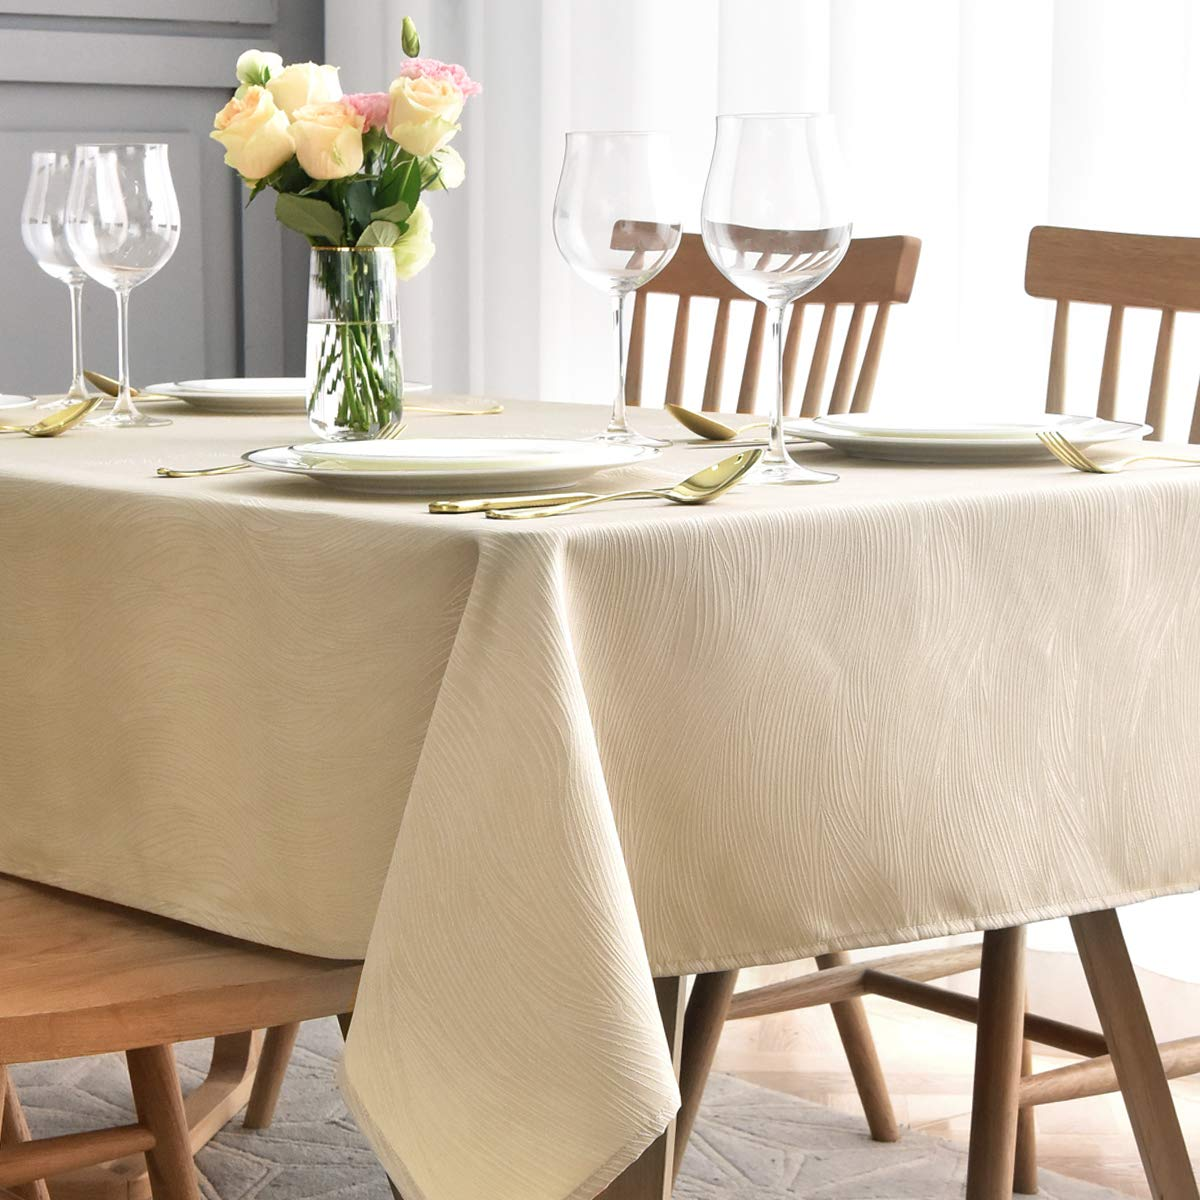 maxmill Jacquard Table Cloth Swirl Design Water Resistant Wrinkle Resistance Oil Proof Heavy Weight Soft Tablecloth for Kitchen Dinning Tabletop Decoration Oblong 60 x 140 Inch Beige